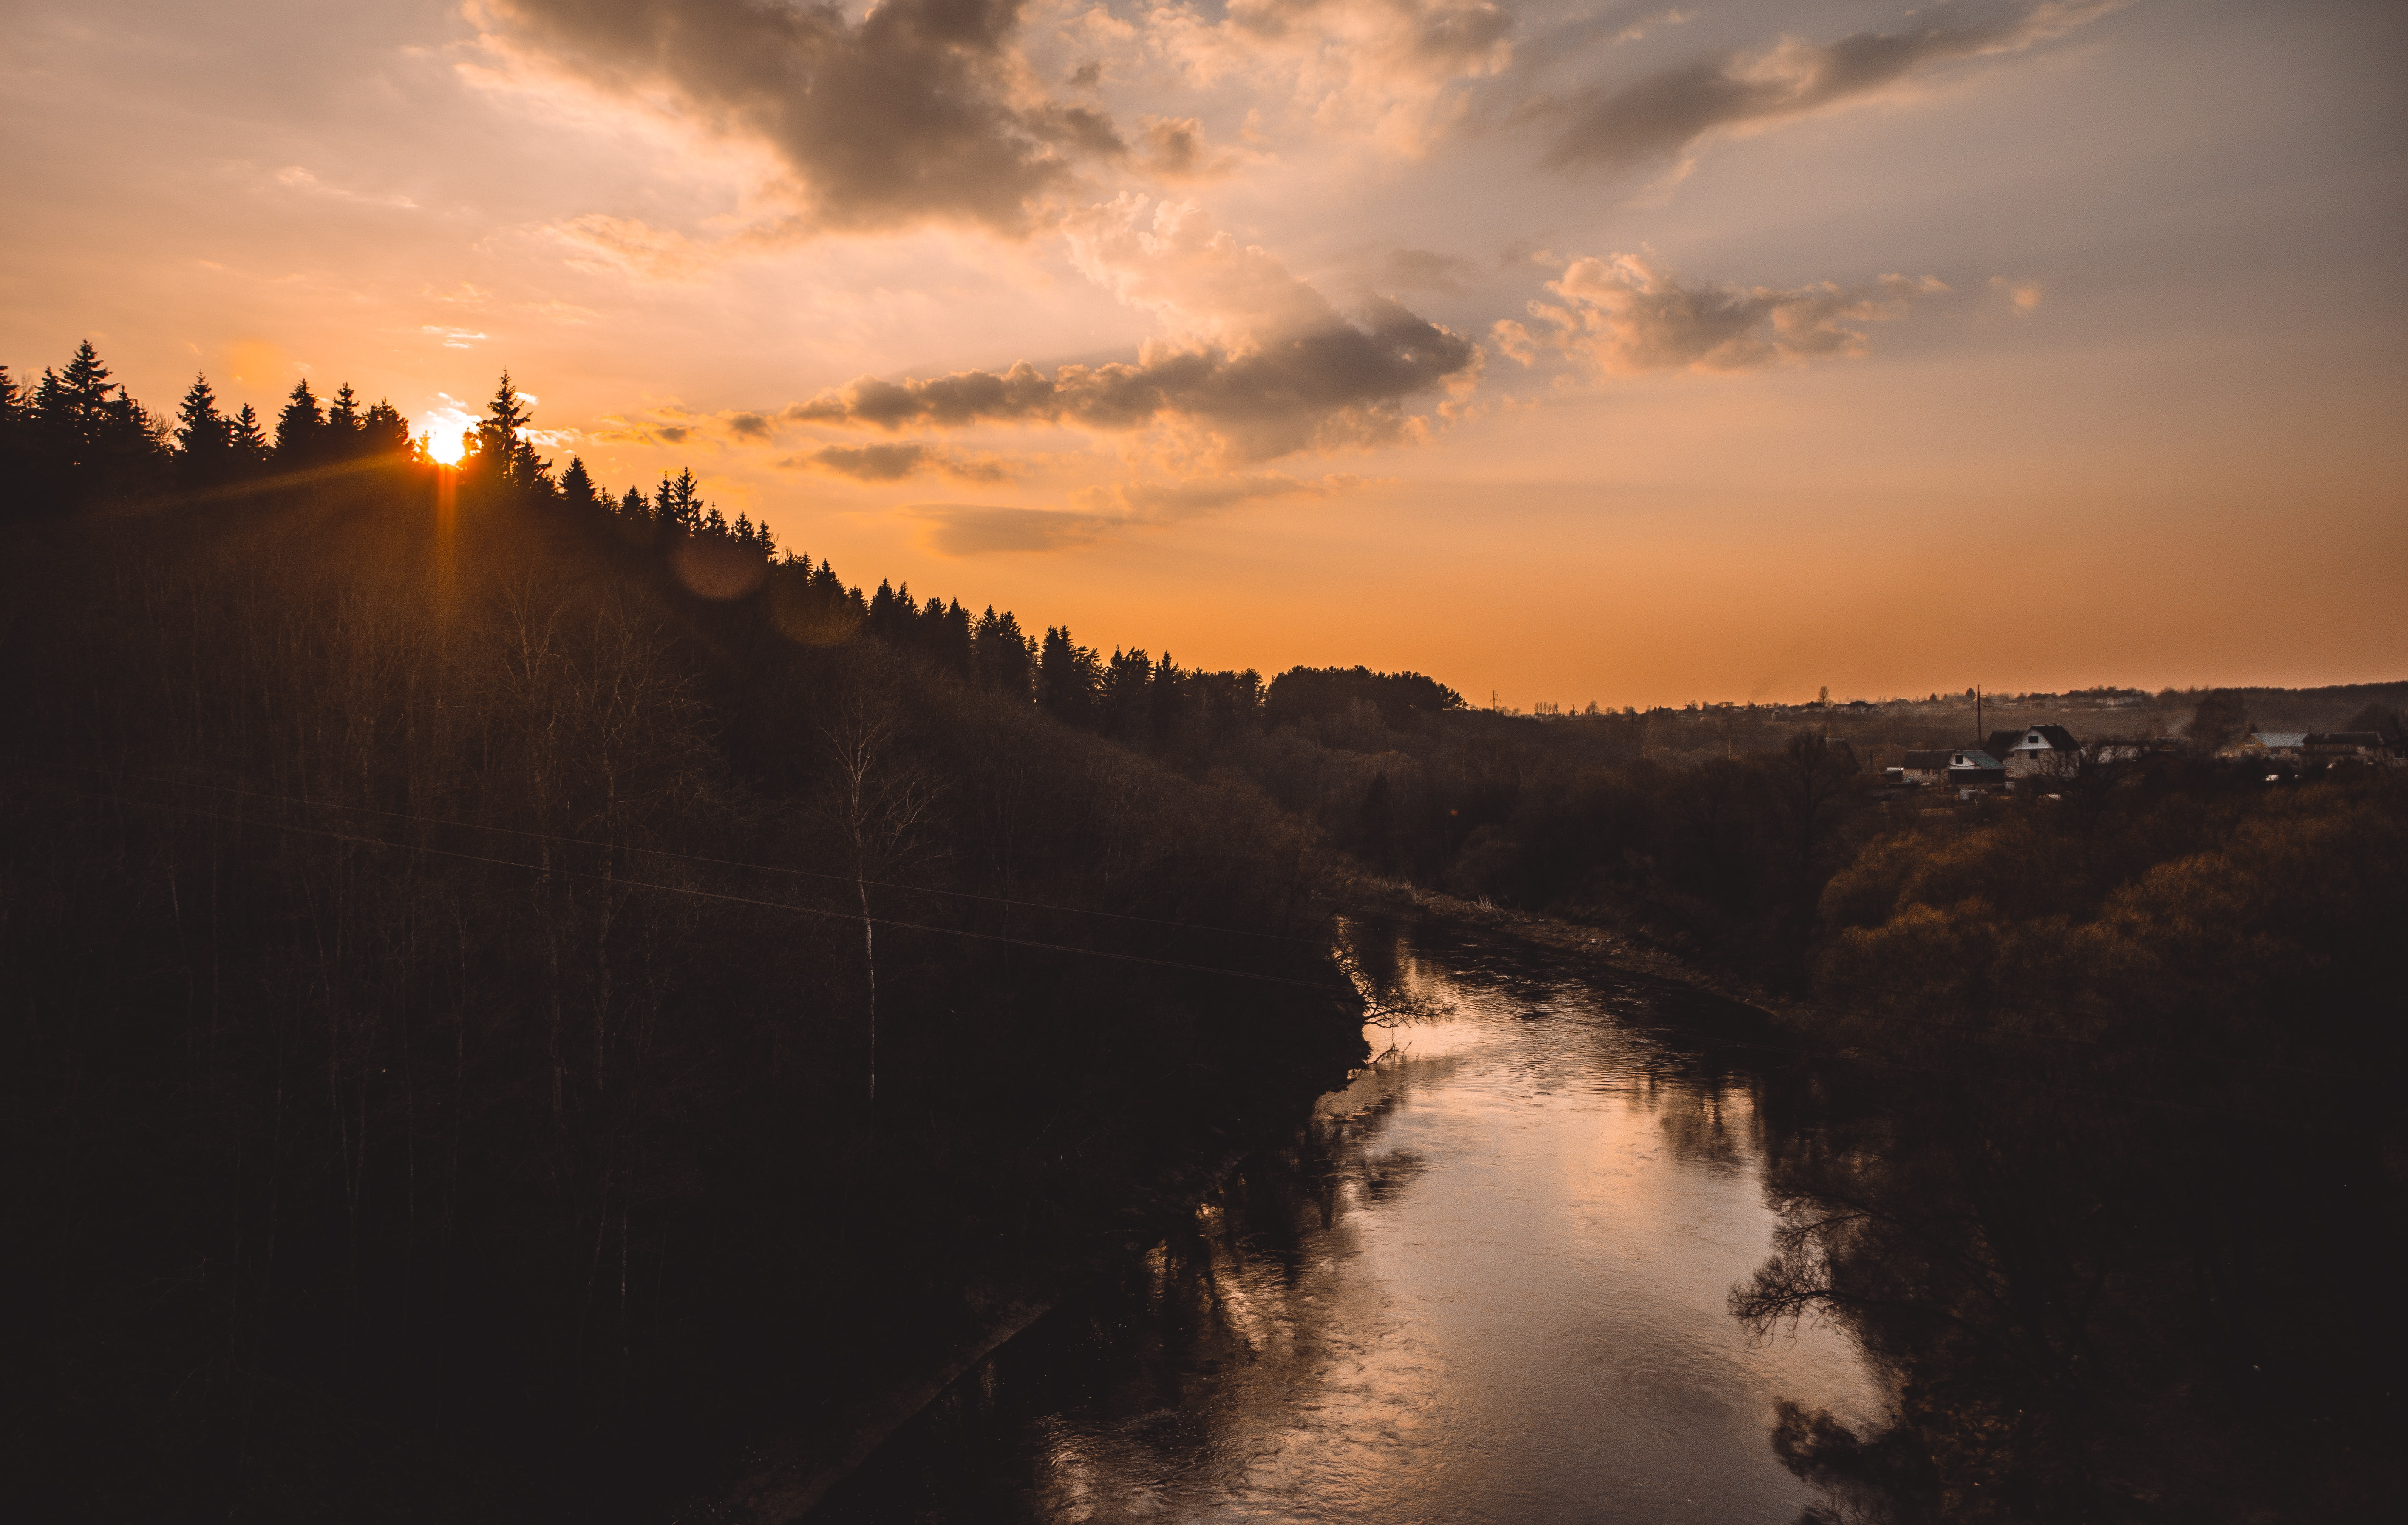 sunset in the river